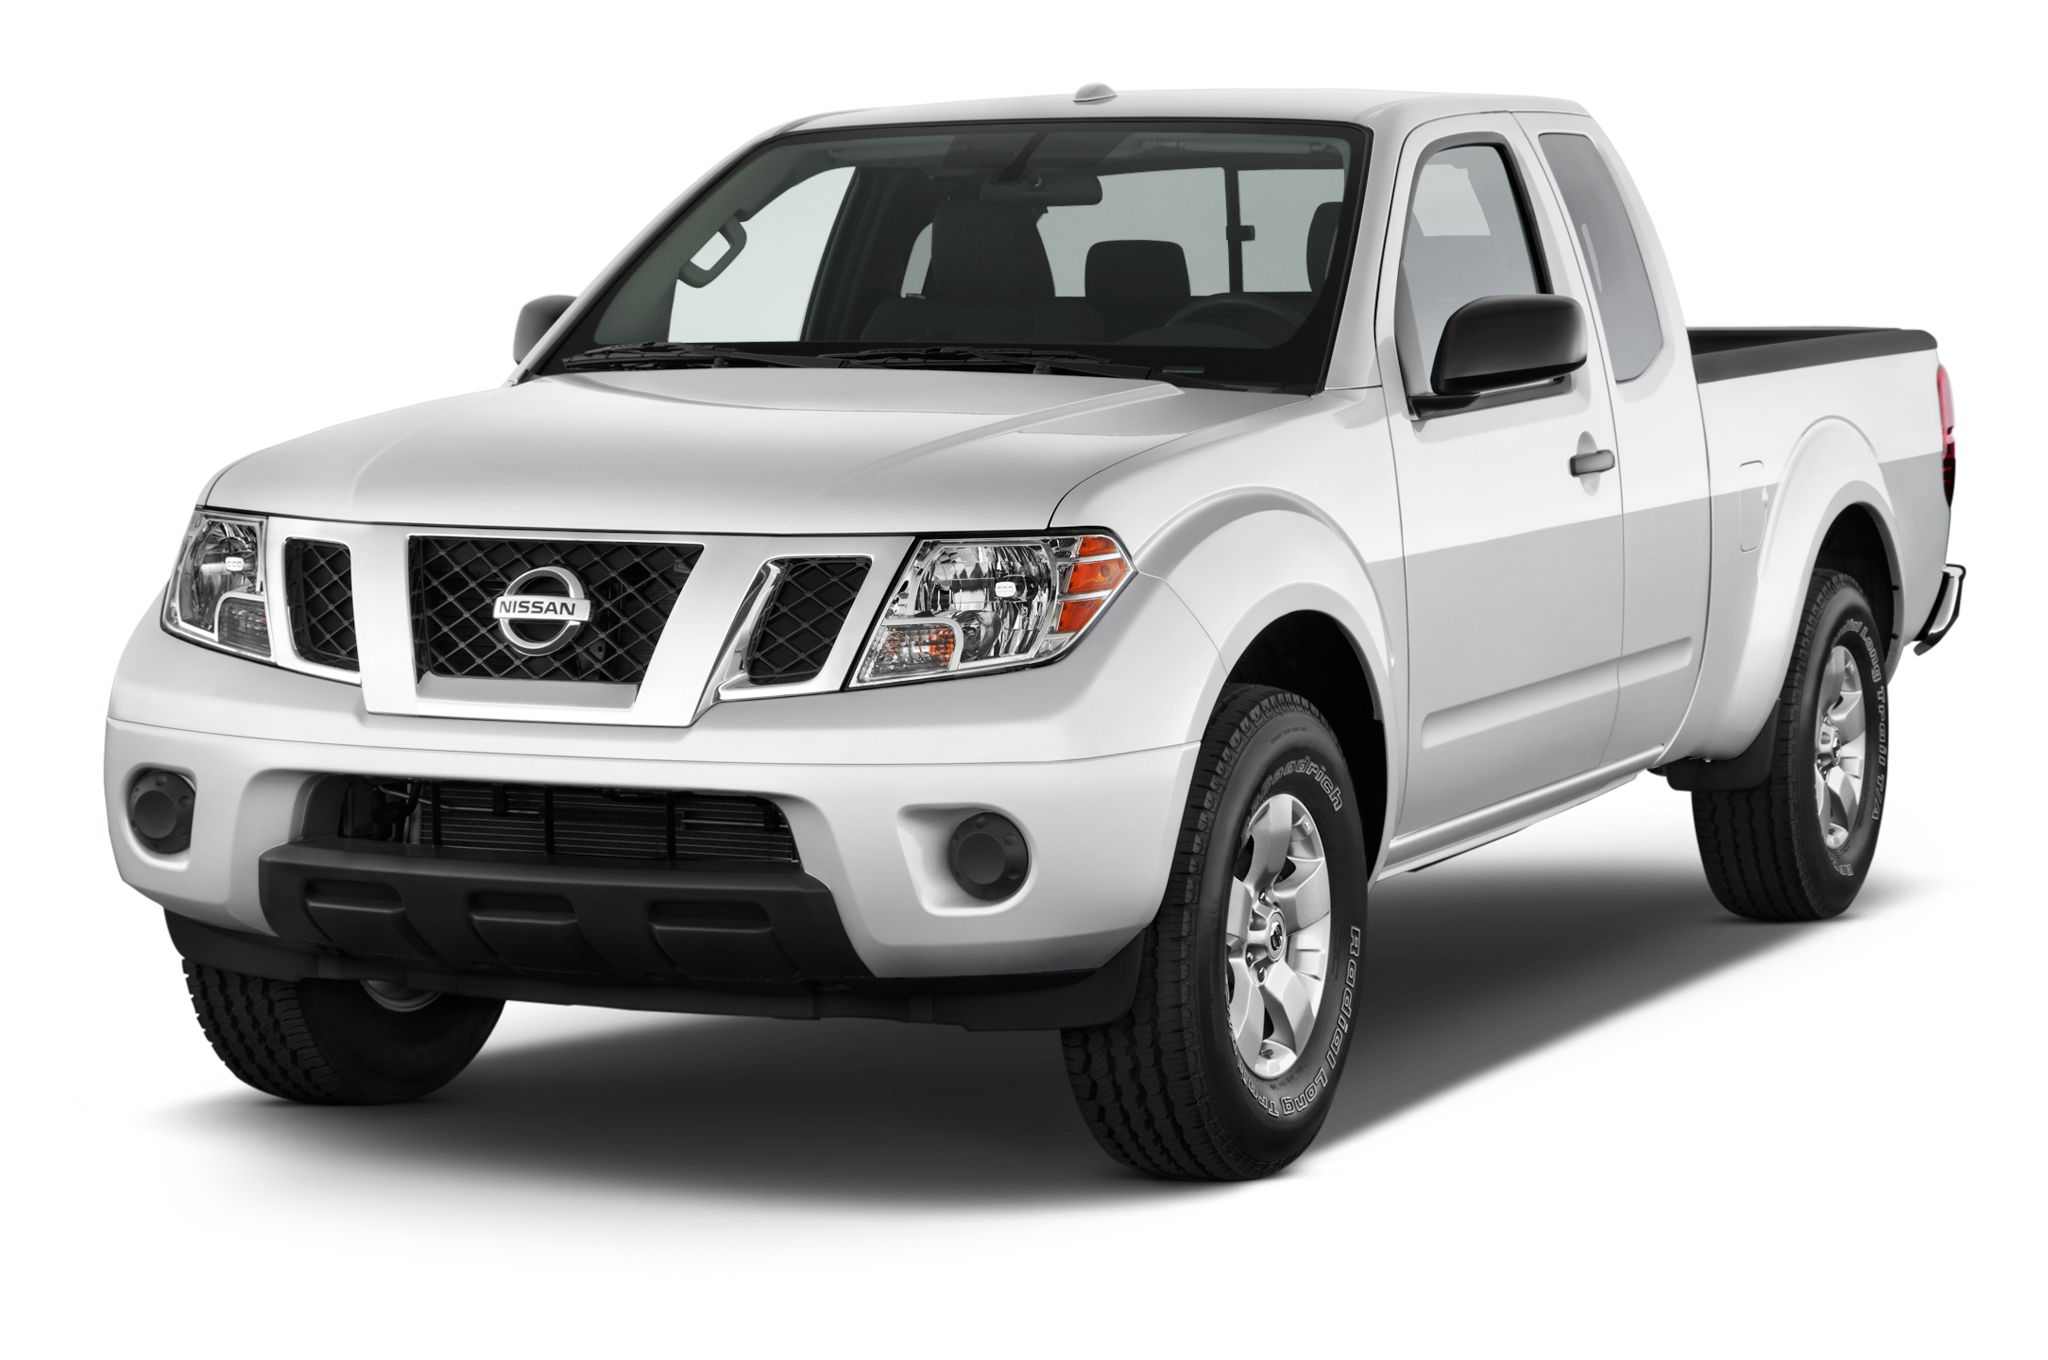 2014 nissan frontier automatic transmission manual transmission repair manuals final drive  [ 2048 x 1360 Pixel ]